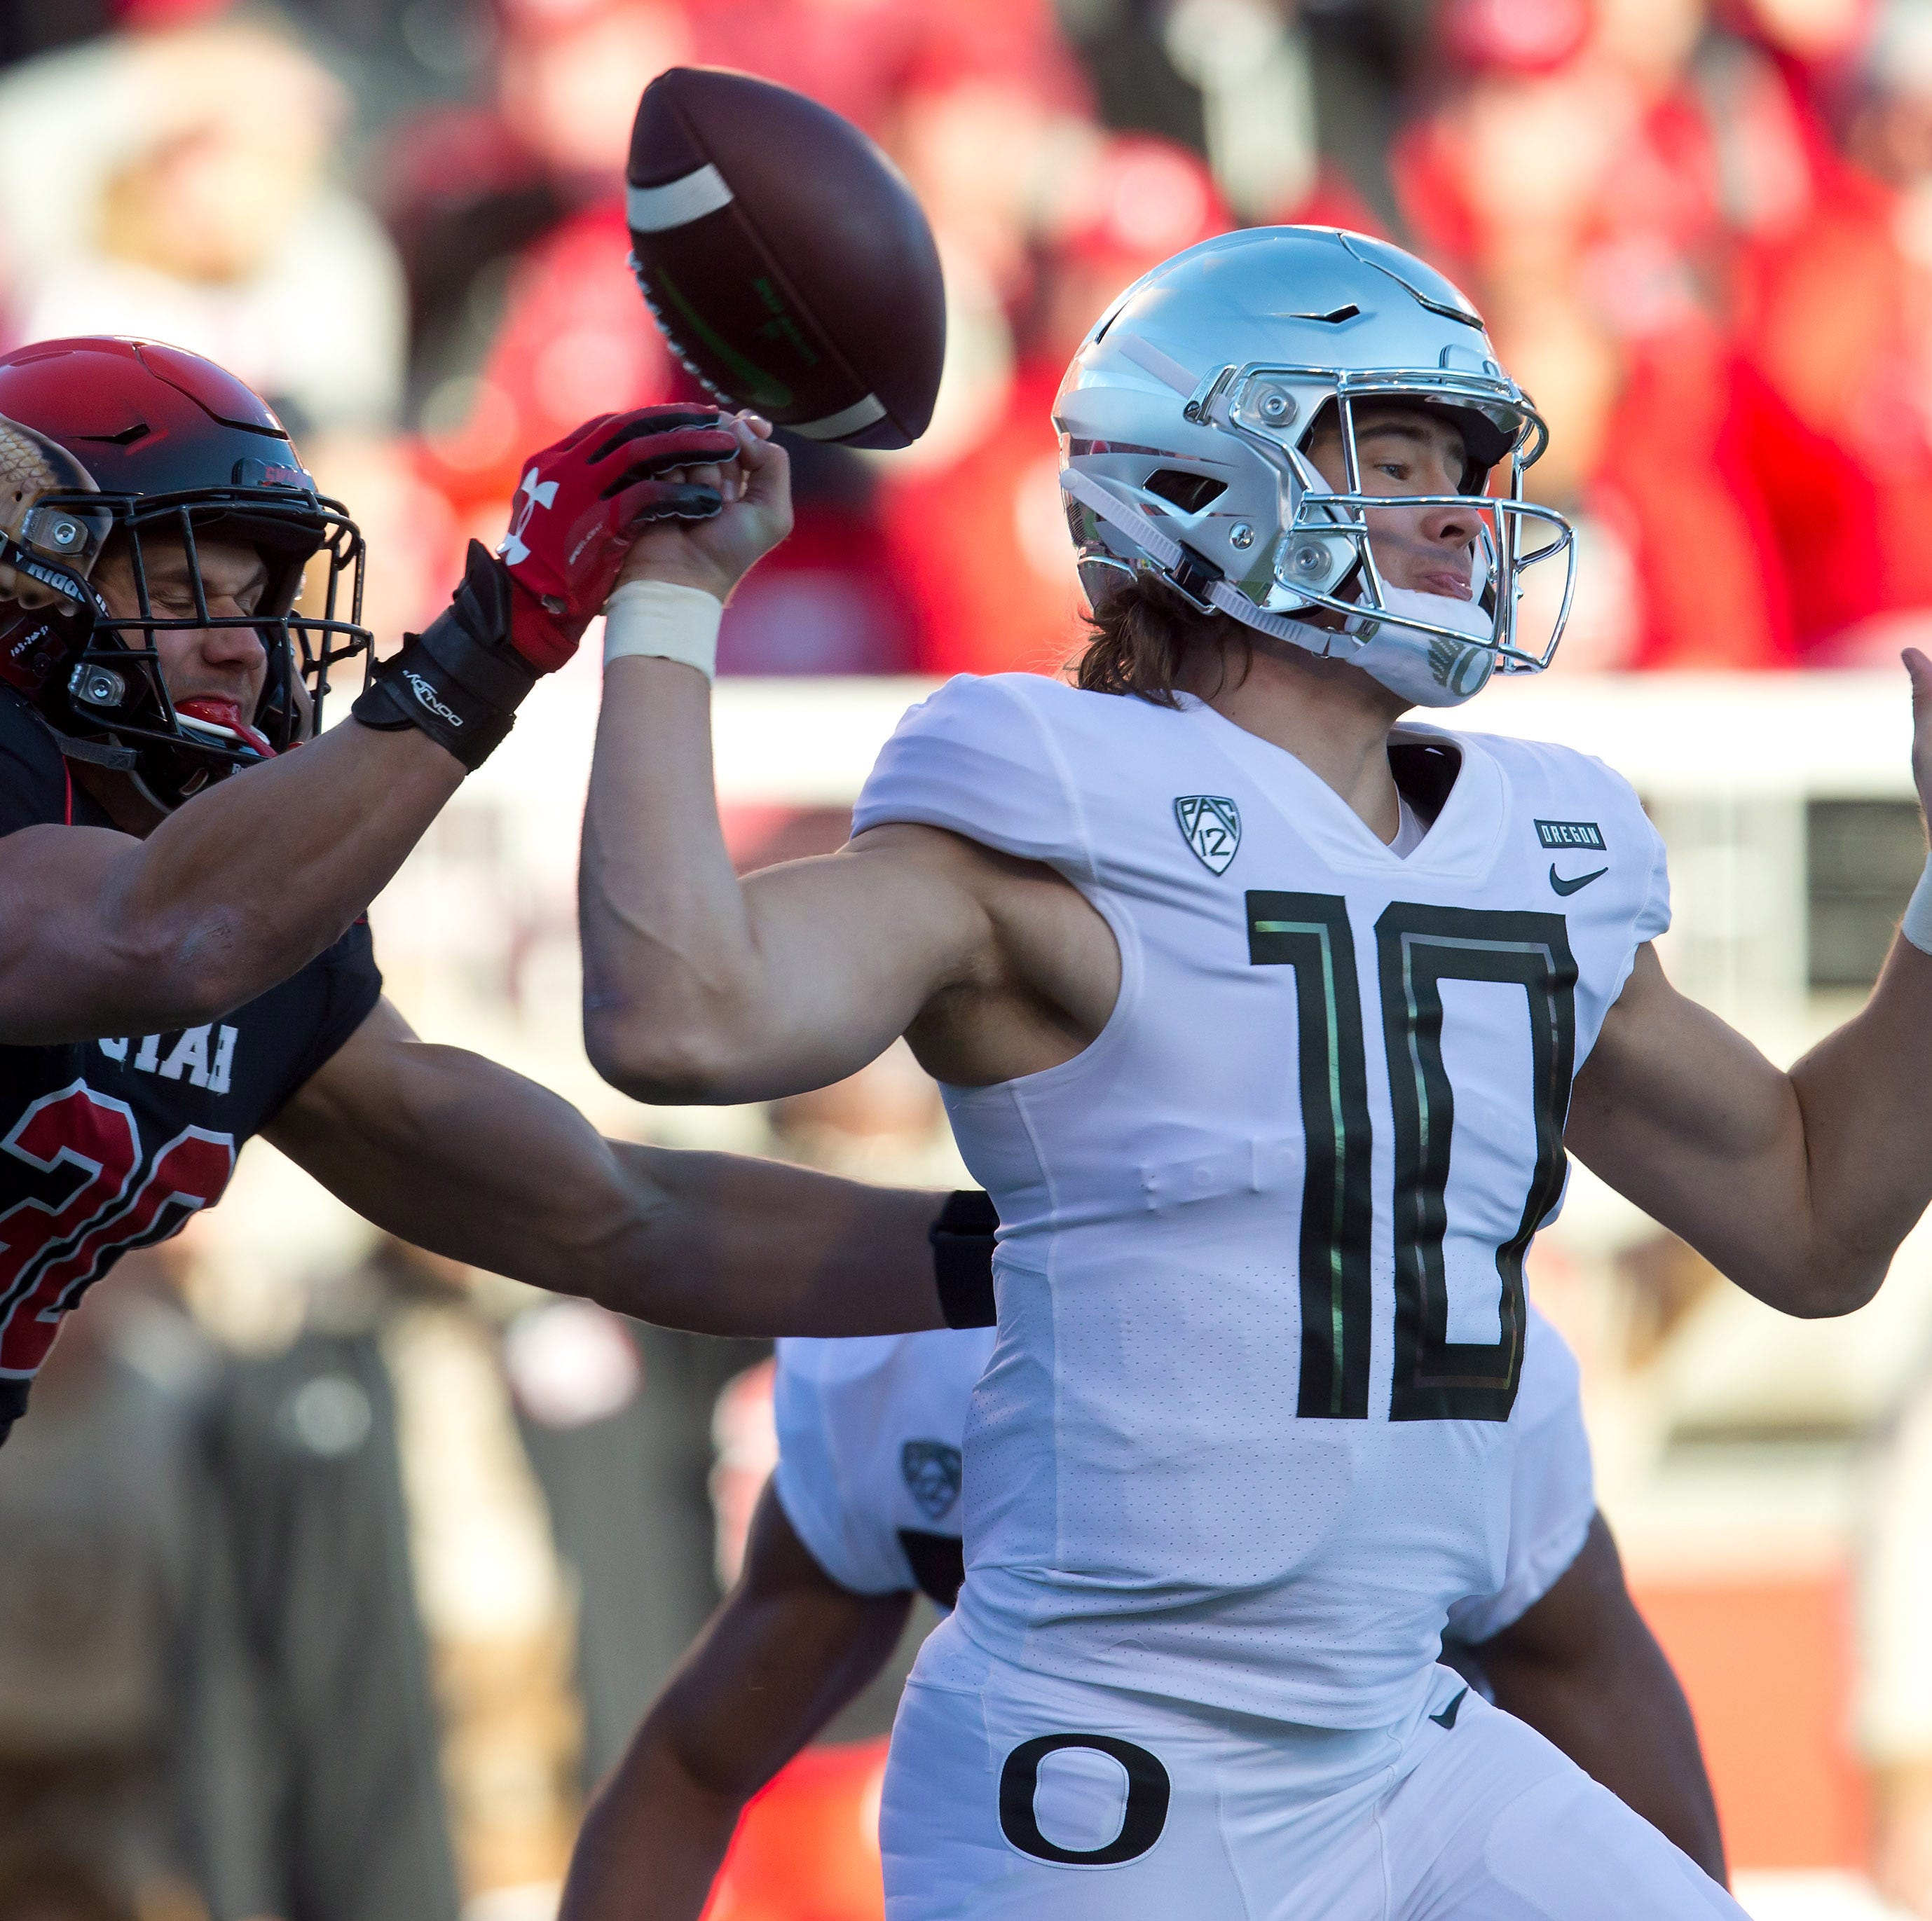 Oregon Ducks football had no business losing to short-handed Utah